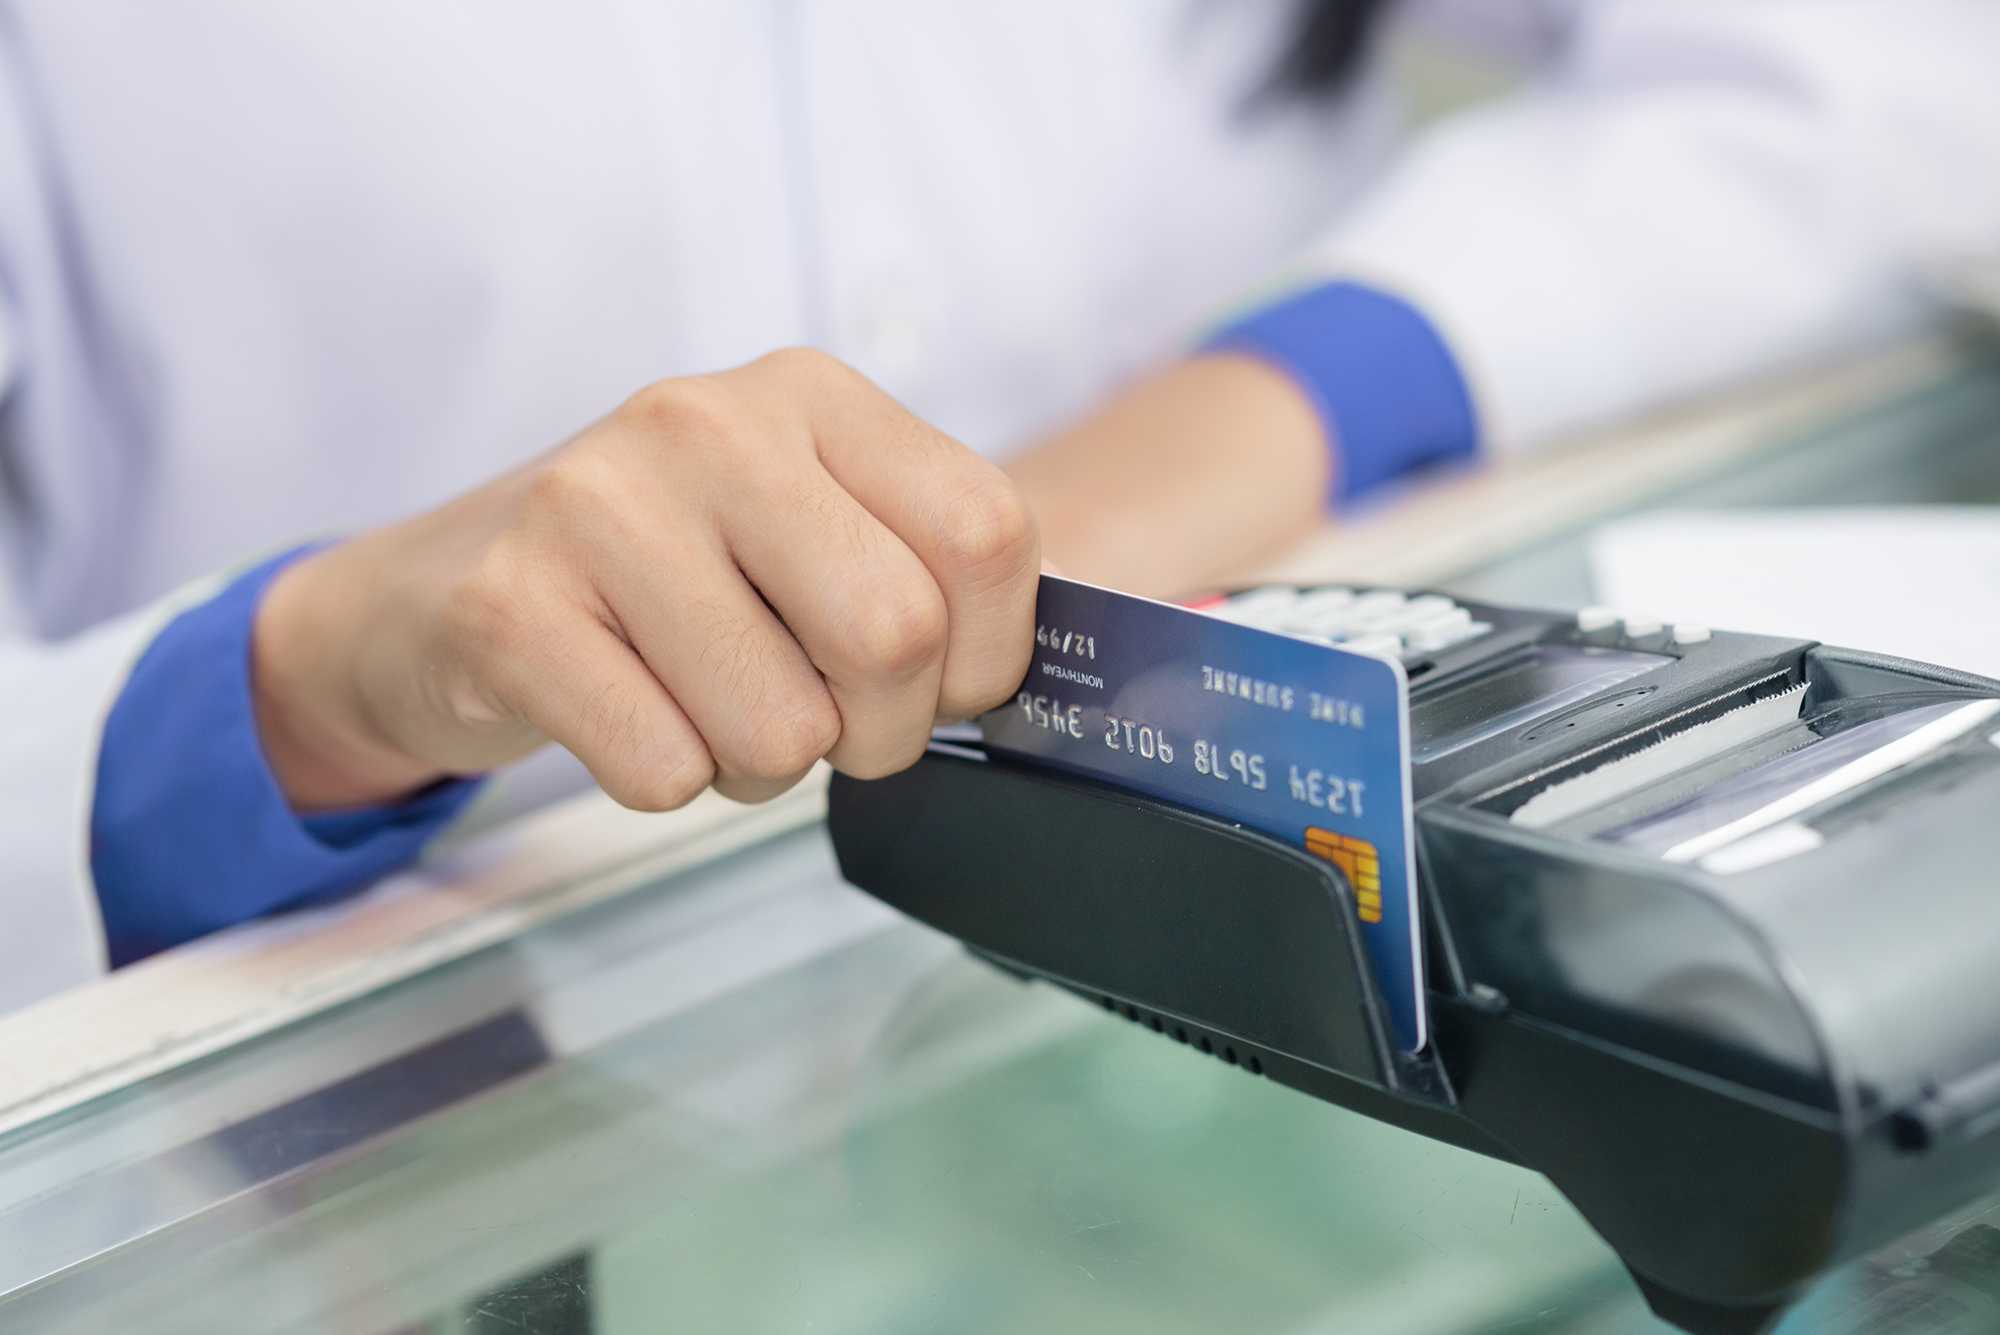 Fraud: Are Credit Cards Safer Than Debit?